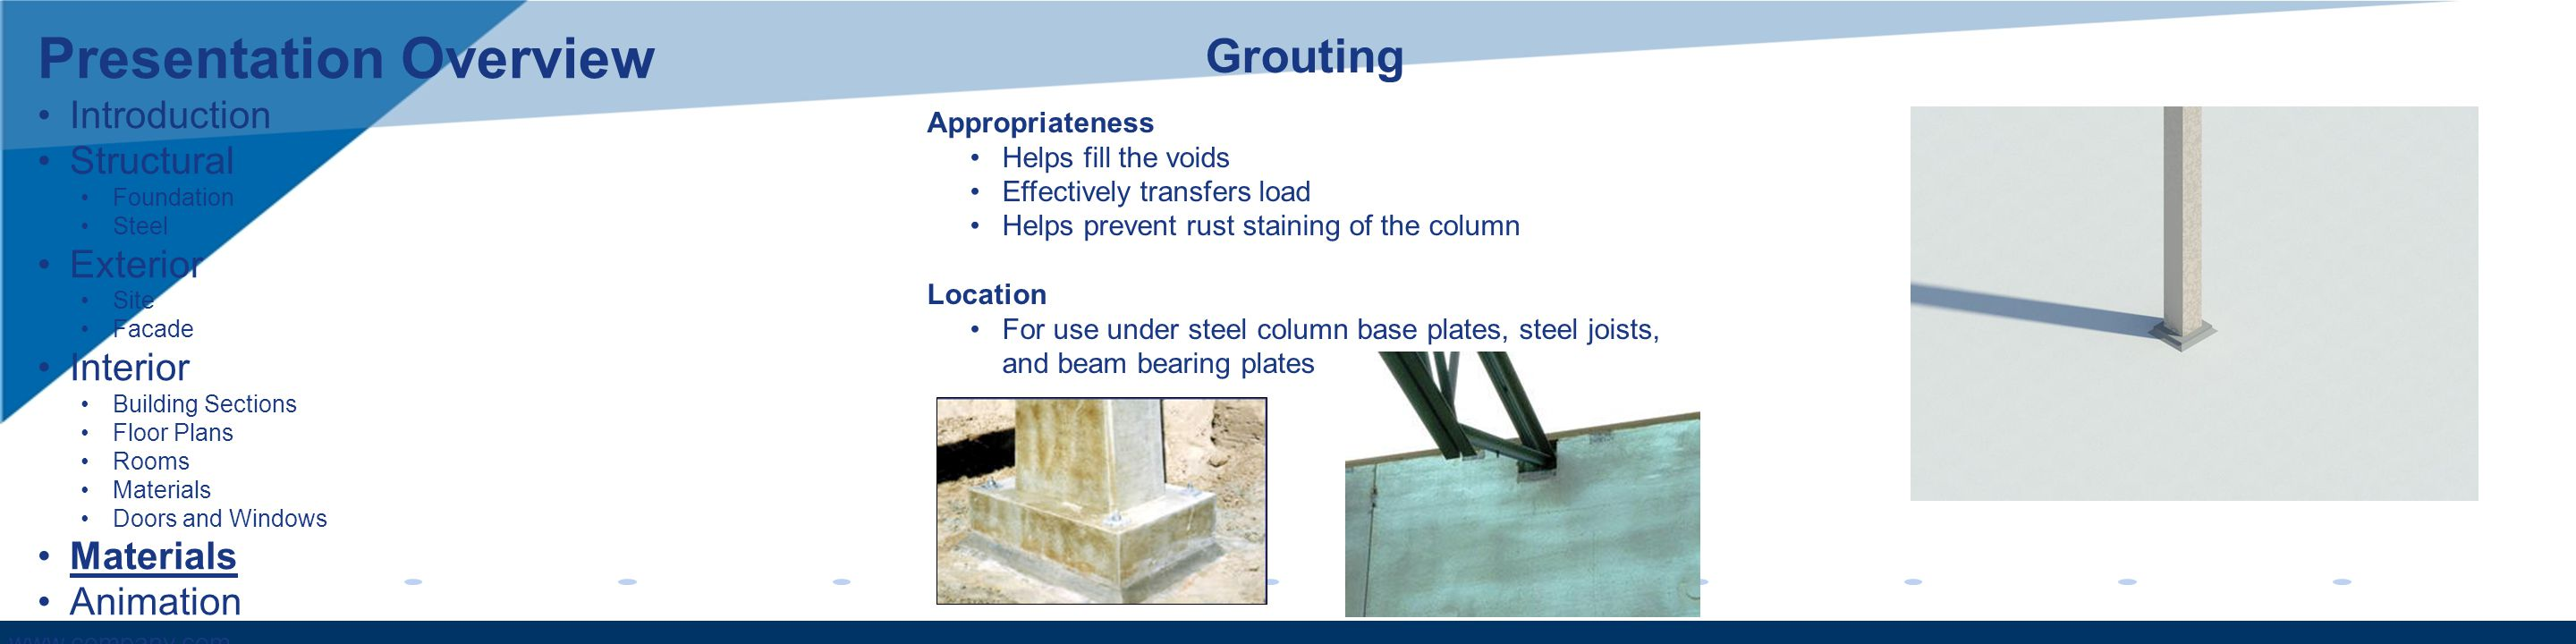 www.company.com Presentation Overview Introduction Structural Foundation Steel Exterior Site Facade Interior Building Sections Floor Plans Rooms Materials Doors and Windows Materials Animation Grouting Appropriateness Helps fill the voids Effectively transfers load Helps prevent rust staining of the column Location For use under steel column base plates, steel joists, and beam bearing plates